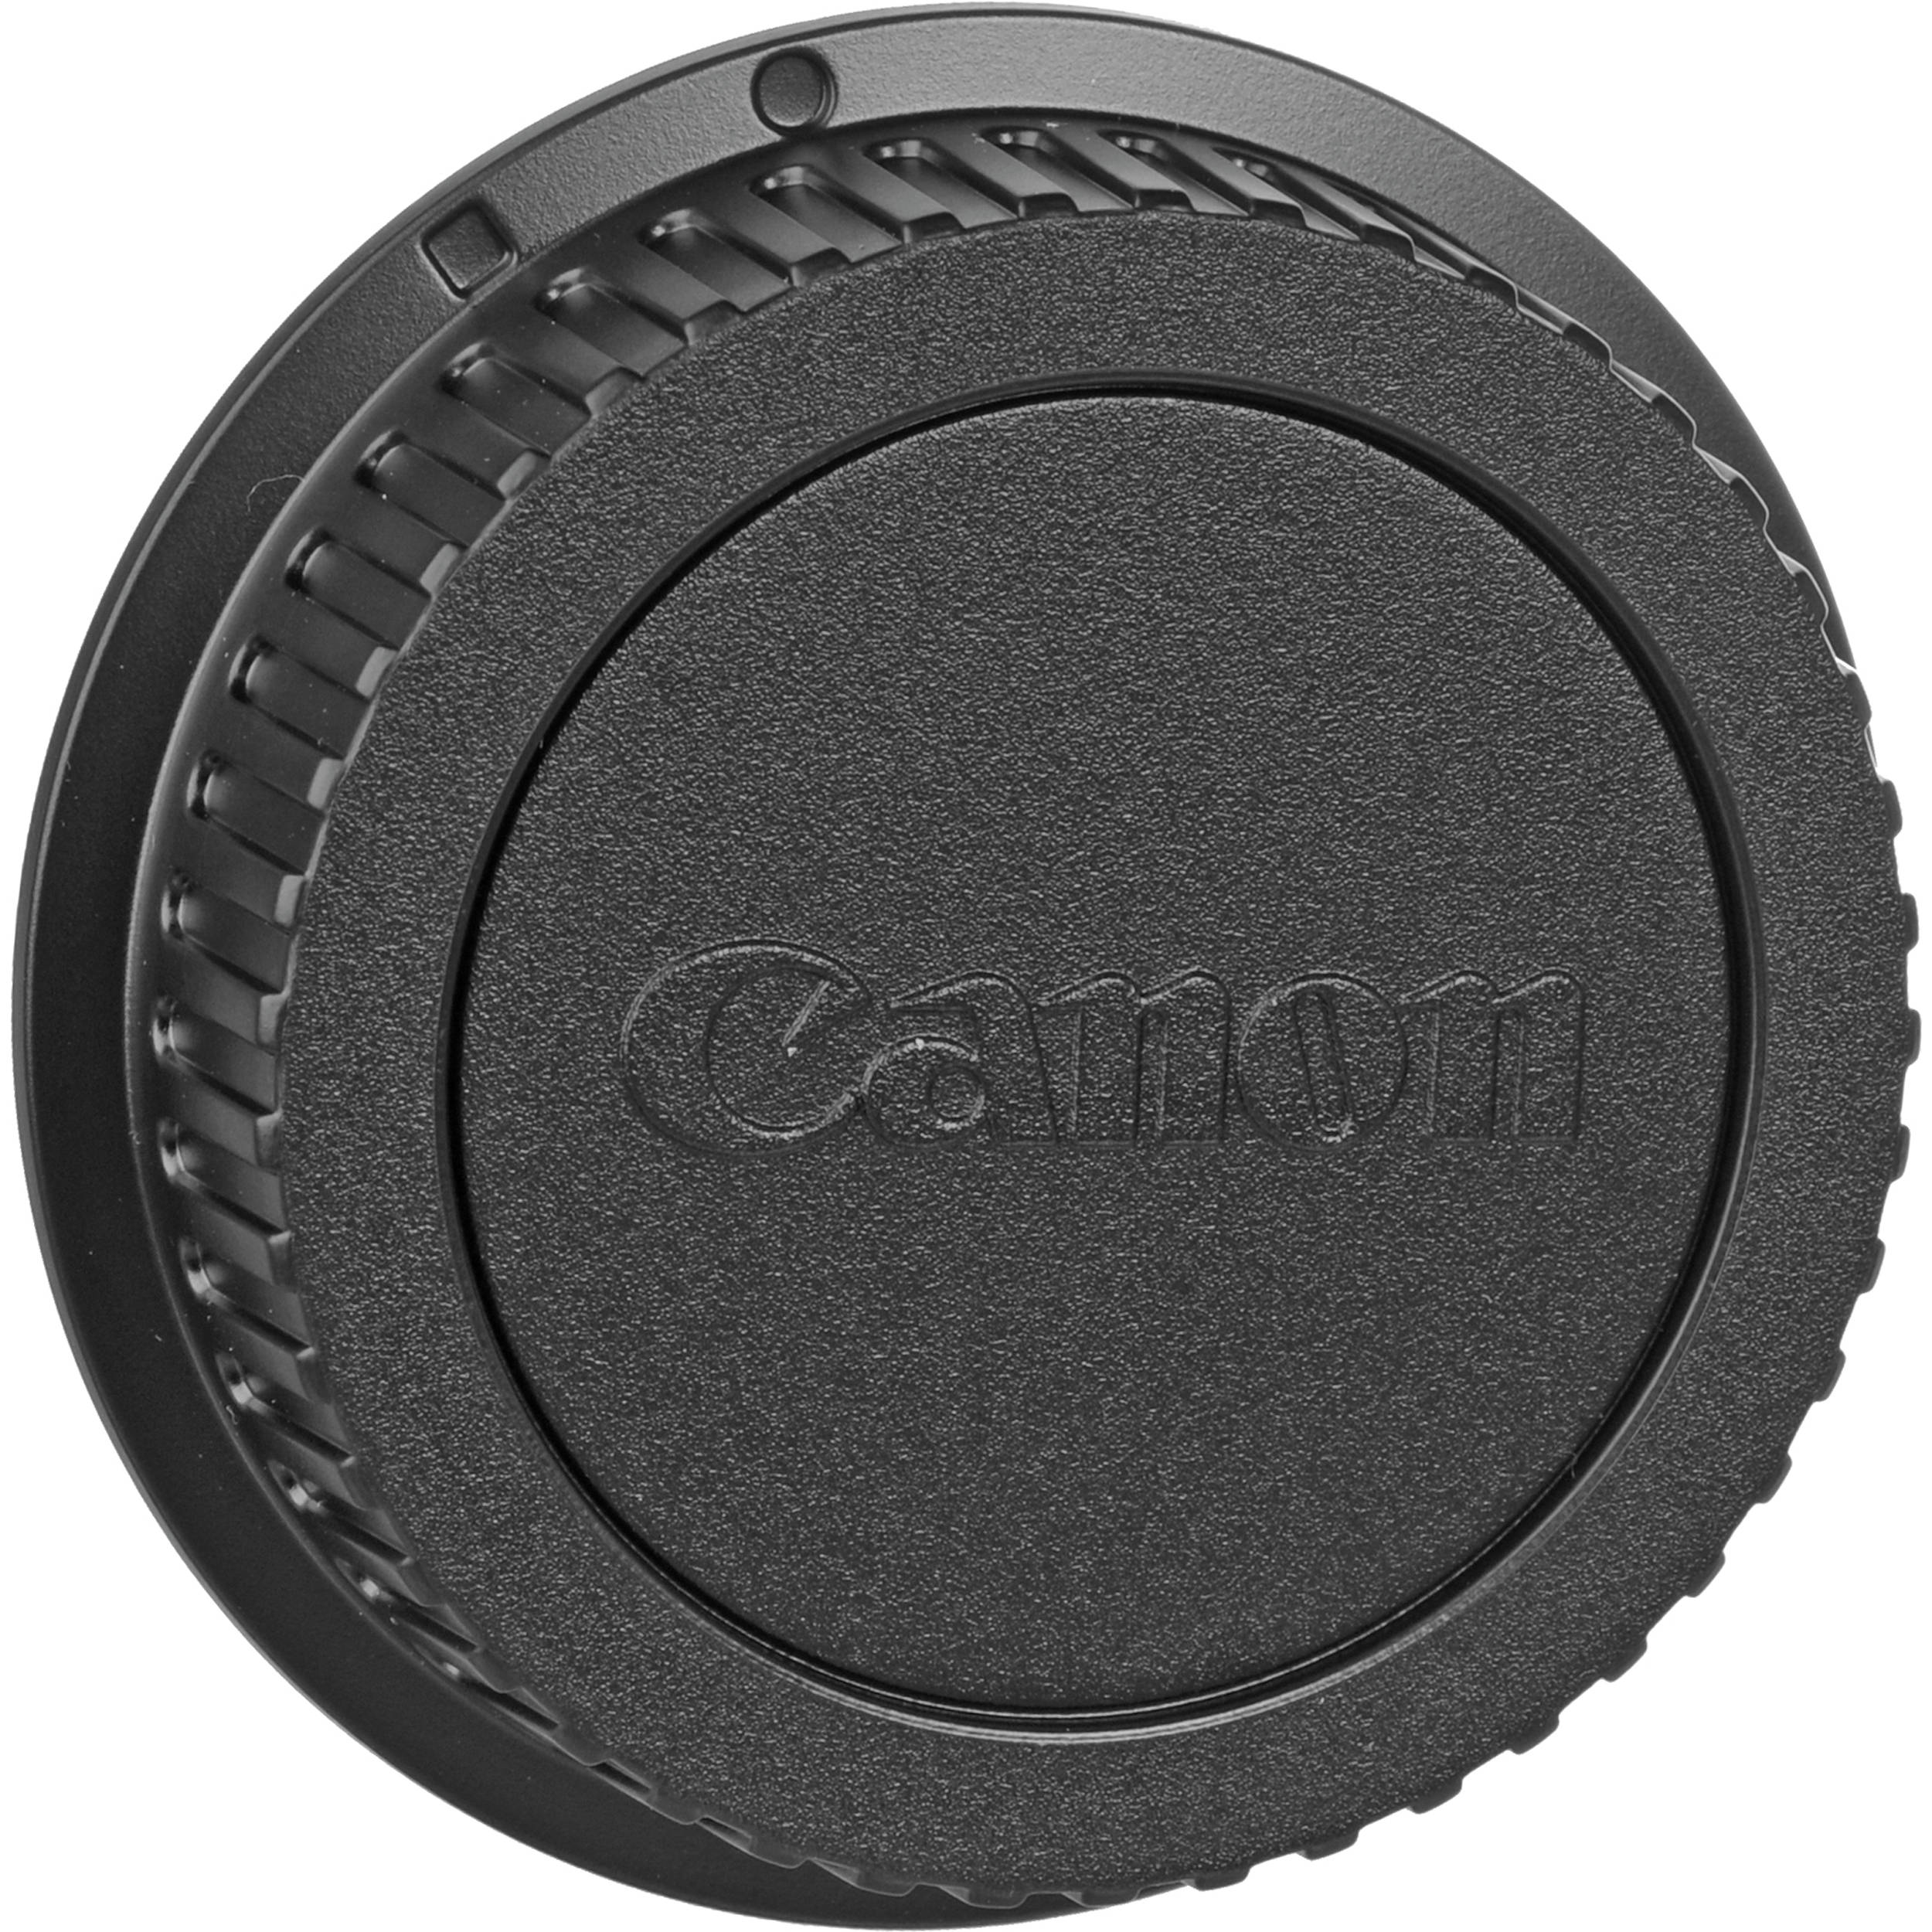 c025d33c4 Canon Lens Dust Cap E (Rear) 2723A001 B&H Photo Video